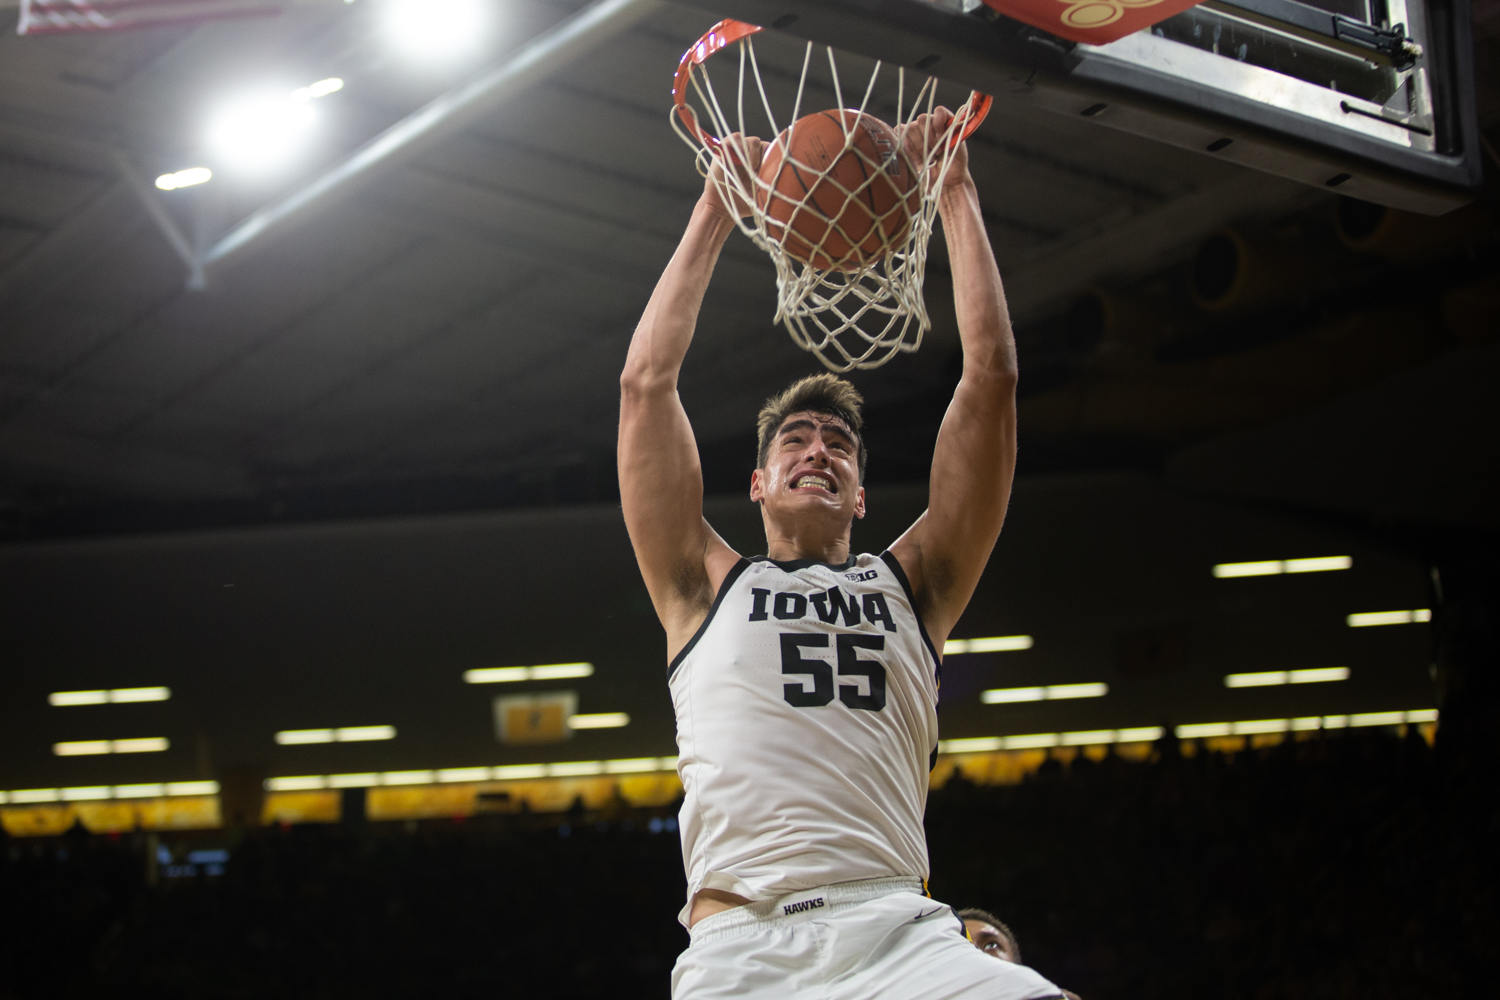 Iowa's Luka Garza dunks the ball during a game against Kennesaw State University at Carver Hawkeye Arena on Sunday, Dec. 29, 2019. The Hawkeyes defeated the Owls, 93-51. (Emily Wangen/The Daily Iowan)